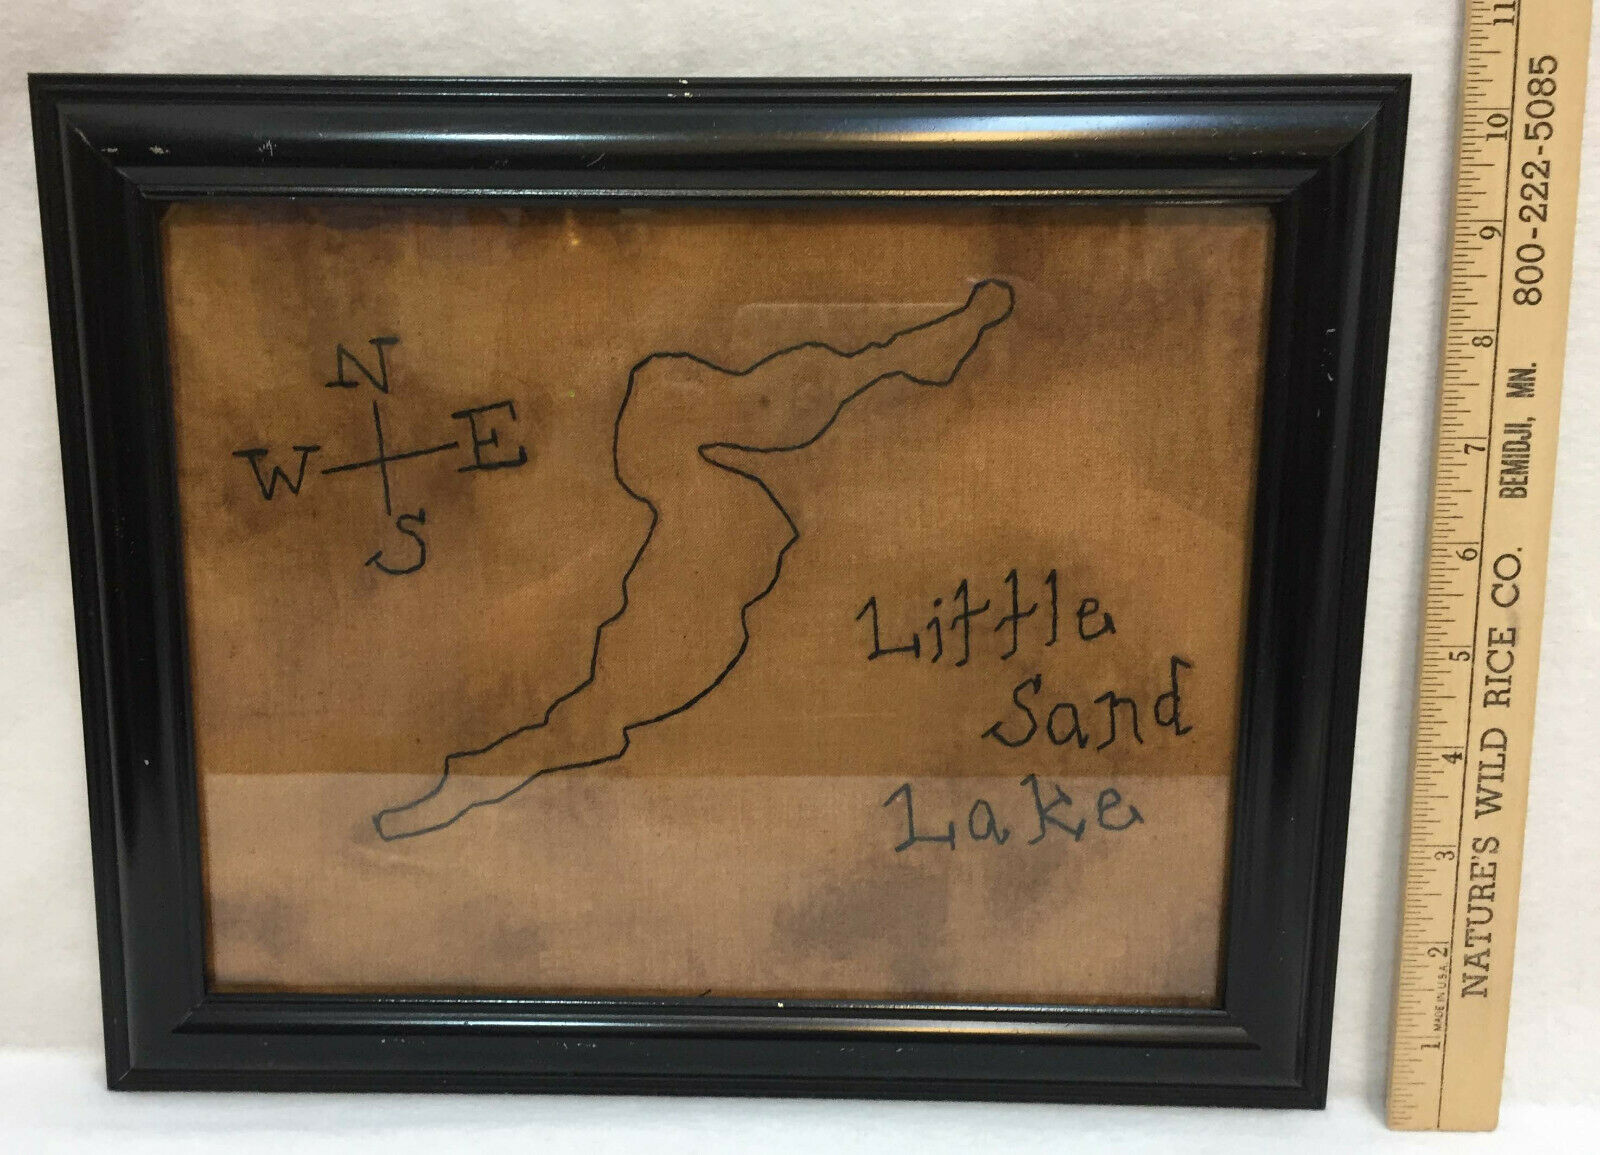 Wall Hanging Little Sand Lake MN Black Embroidered Outline 8x10 Framed w/ Glass